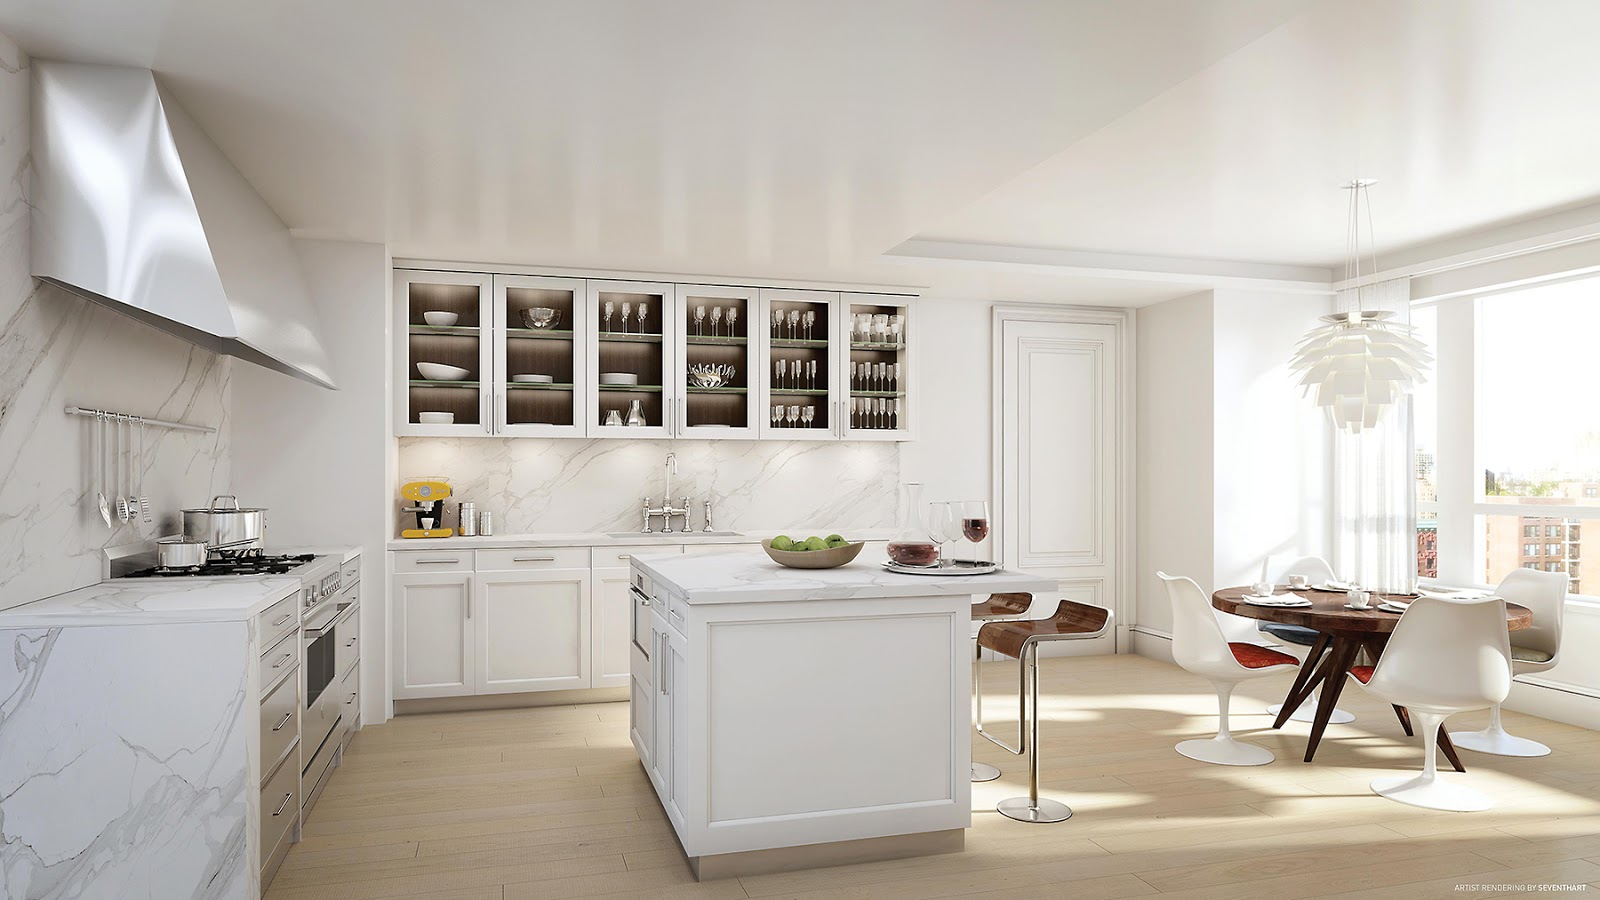 kitchen and interior design siematic citycountry 02